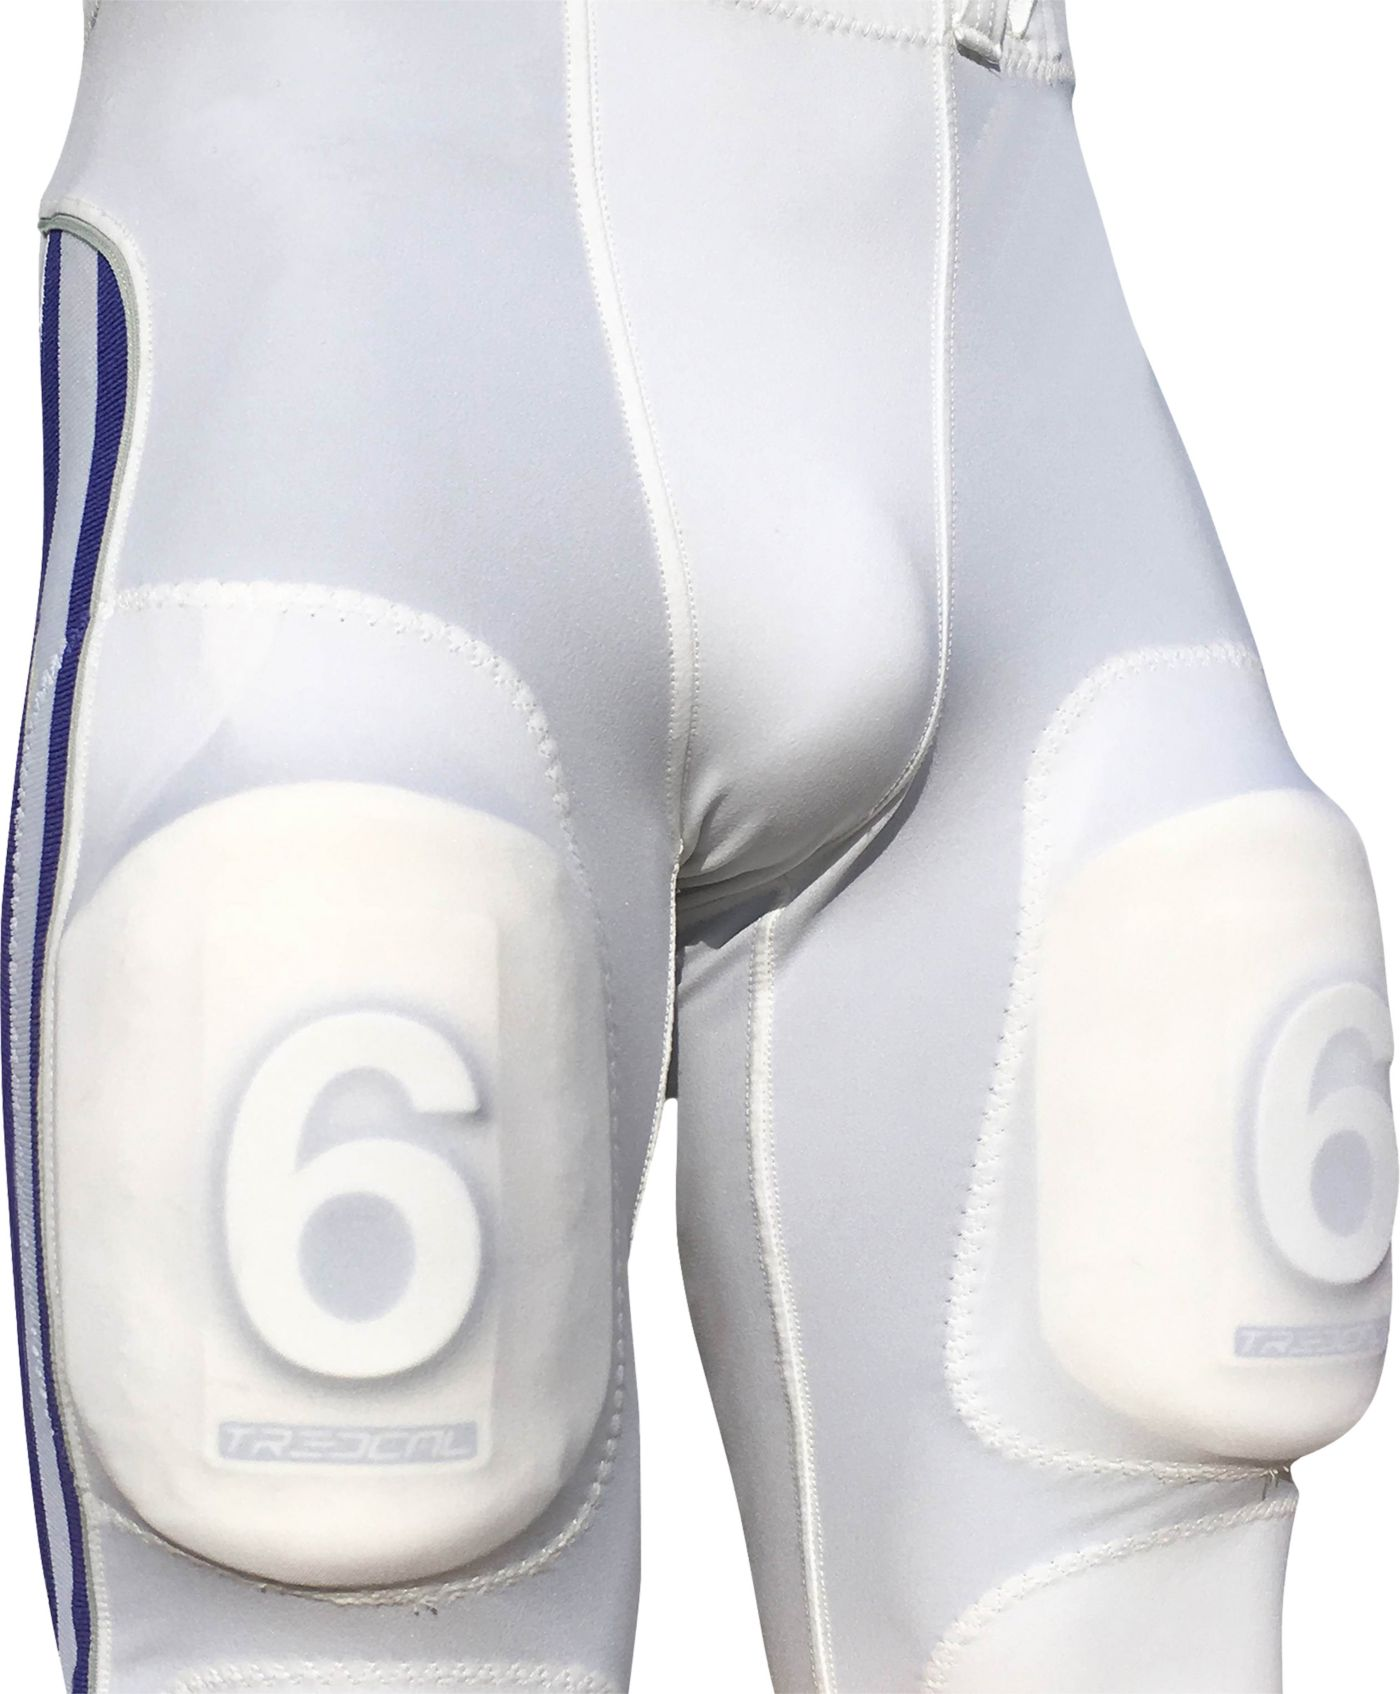 treDCAL Number Six Thigh Pad Football Decals